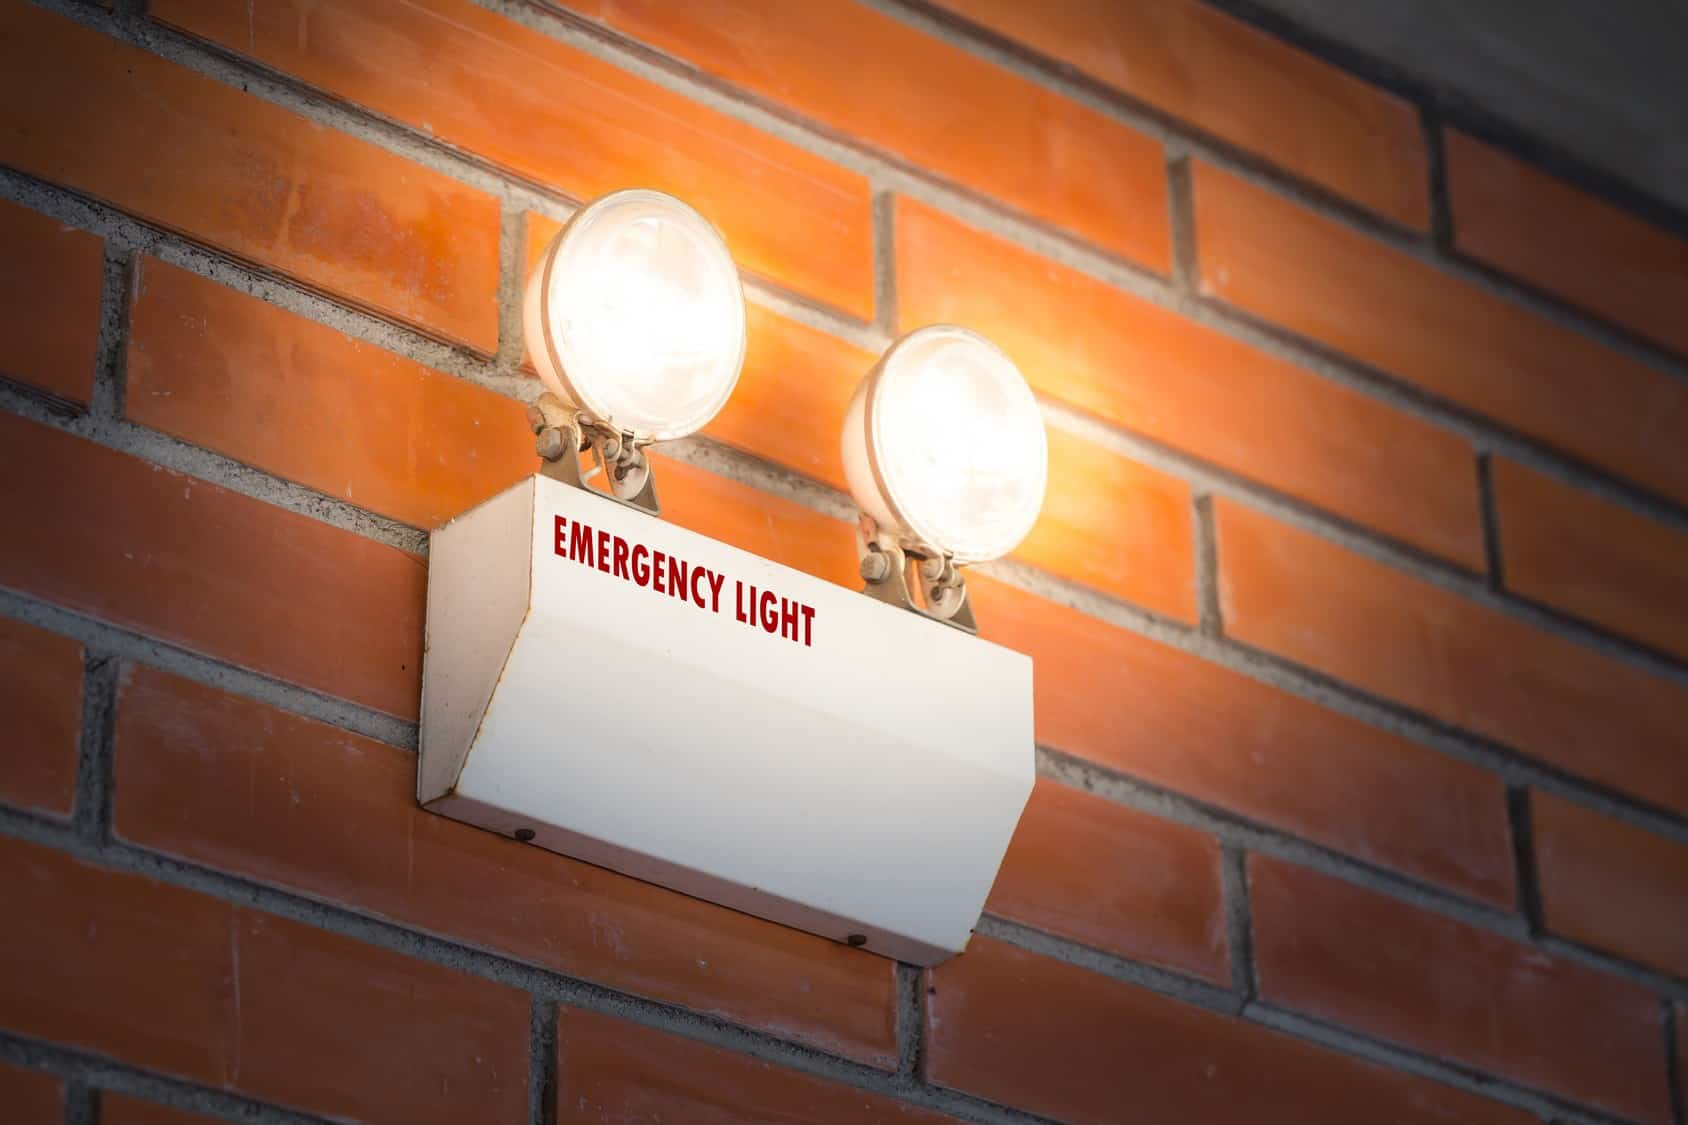 Emergency light on wall